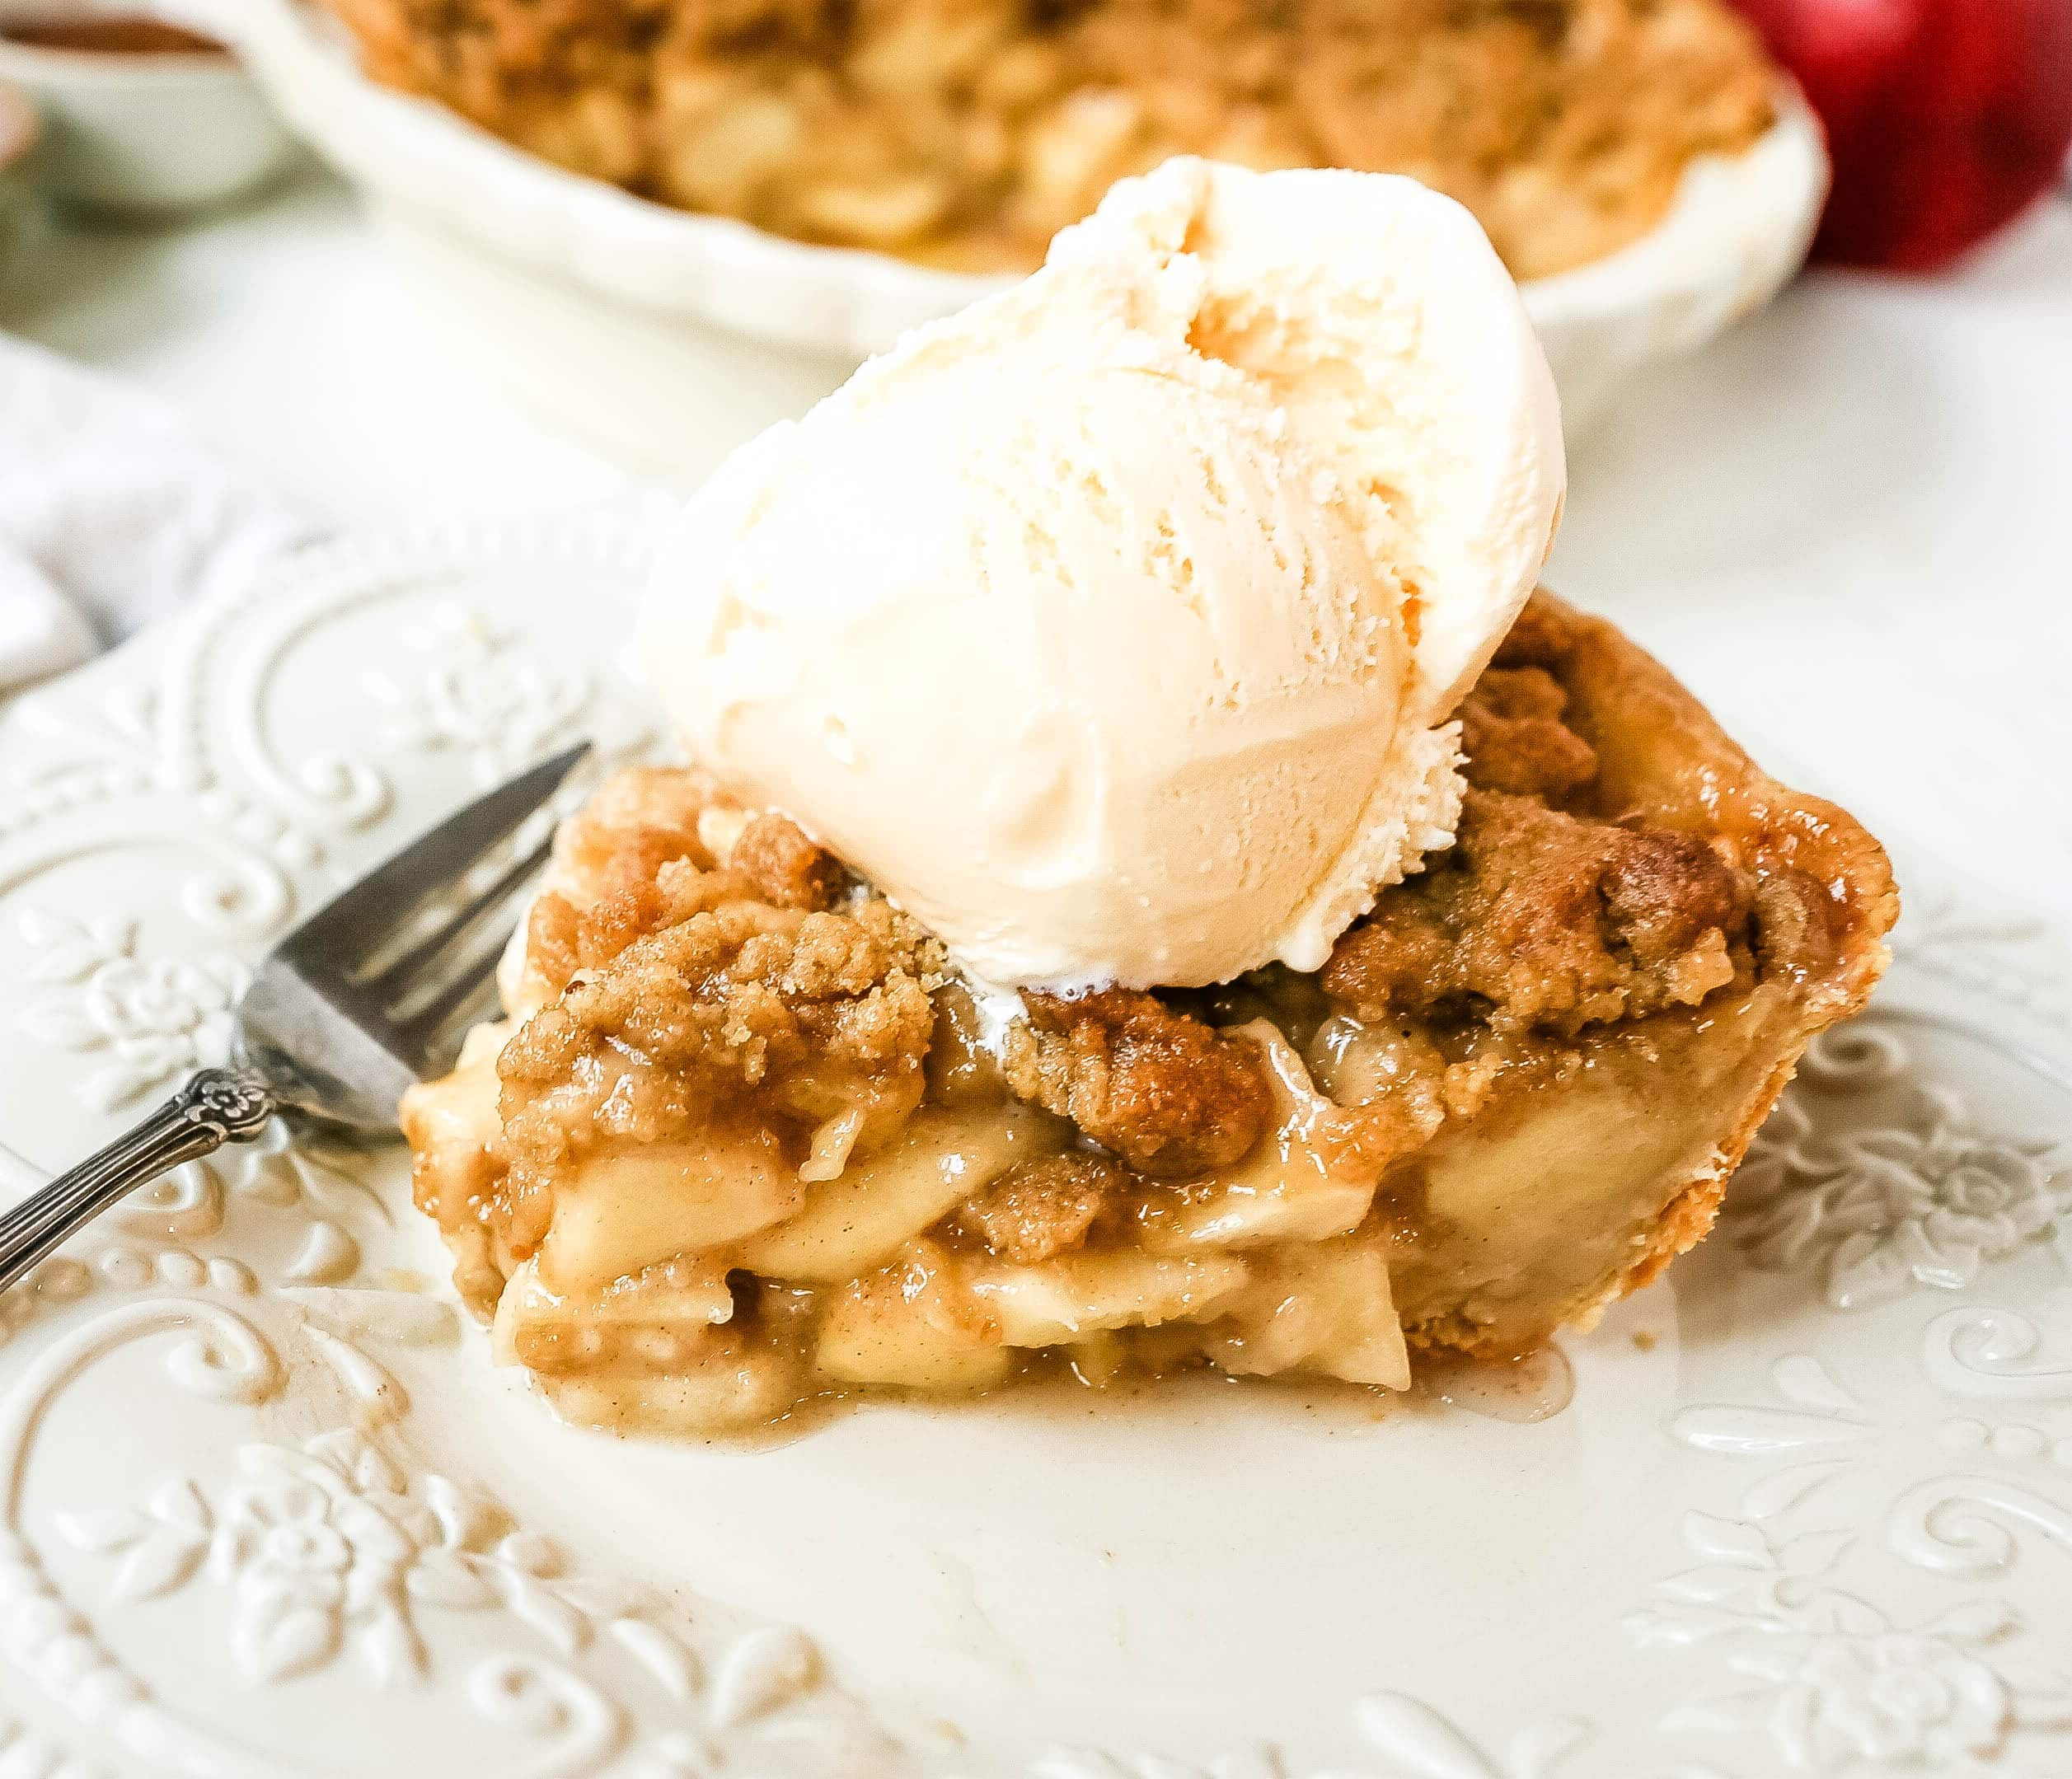 Dutch Apple Pie How to make a traditional Dutch Apple Pie with a buttery, flaky pie crust, topped with cinnamon-sugar apples, with a brown sugar streusel topping.  www.modernhoney.com #apple #applepie #dutchapplepie